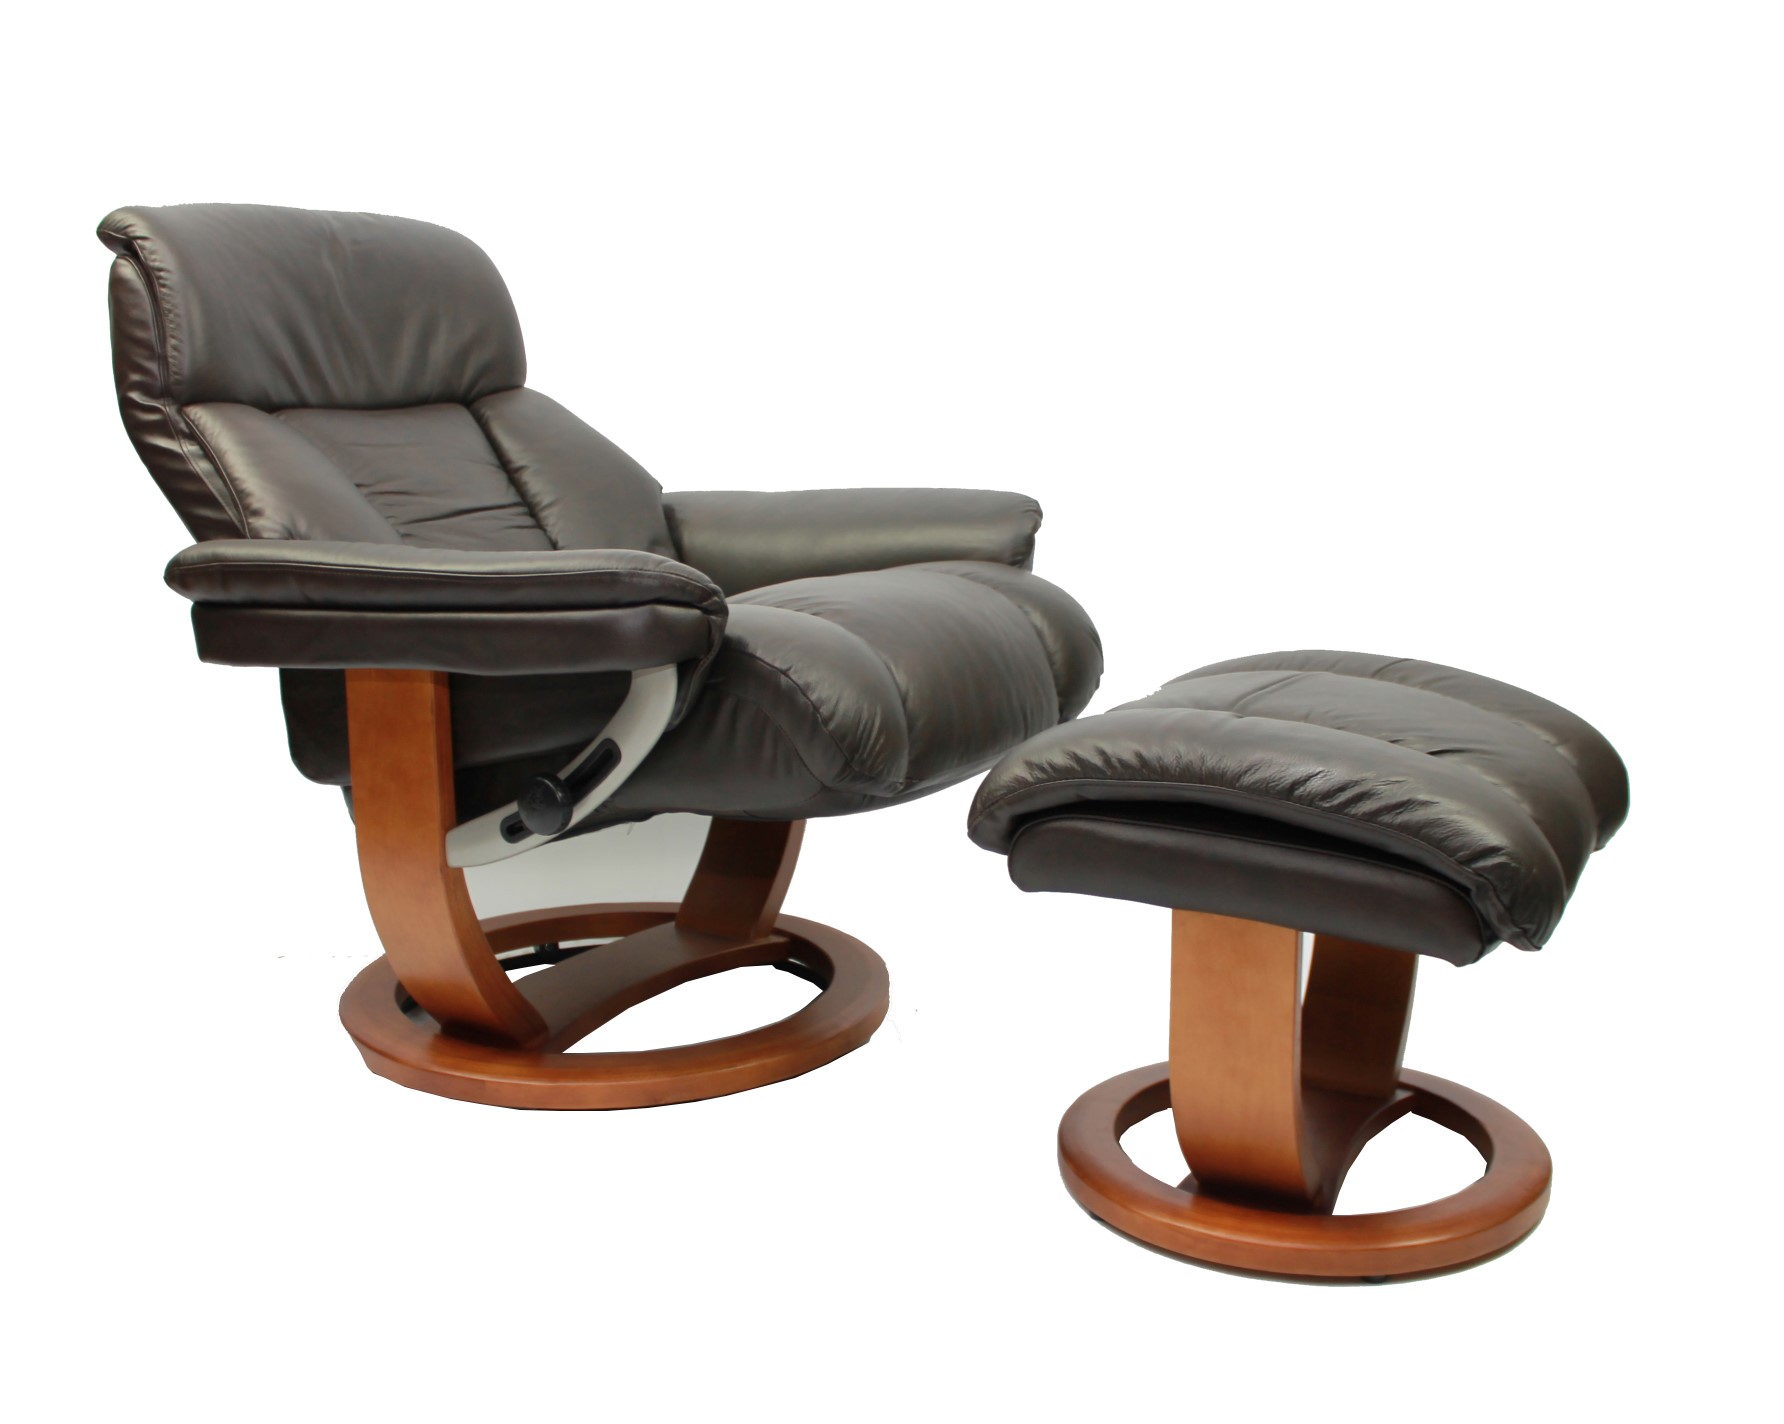 Buy cheap Leather swivel reclining chair pare Chairs